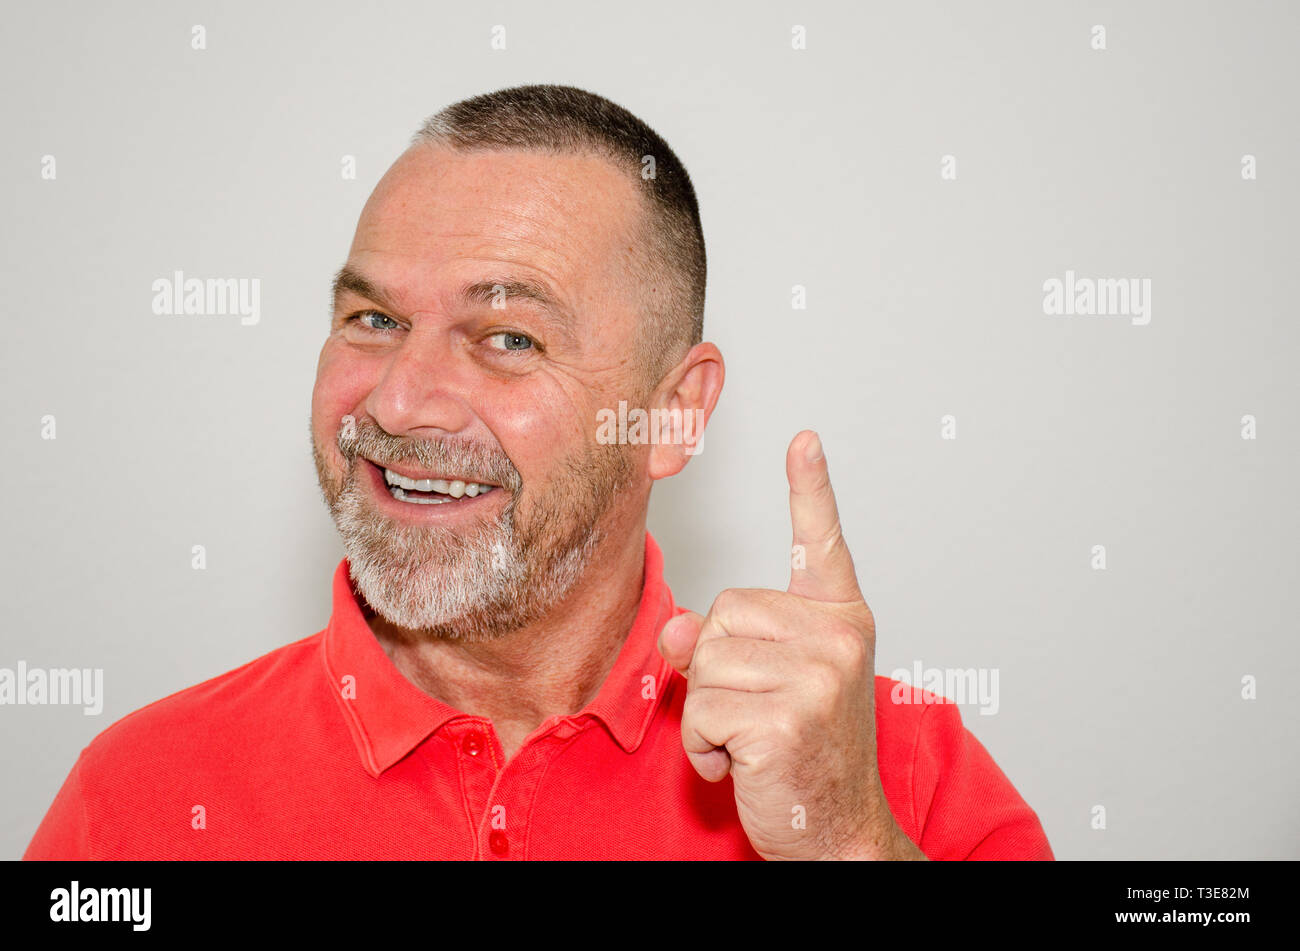 Gleeful happy man in a colorful red shirt with a beaming smile pointing a finger to stress a point over a light grey studio background - Stock Image